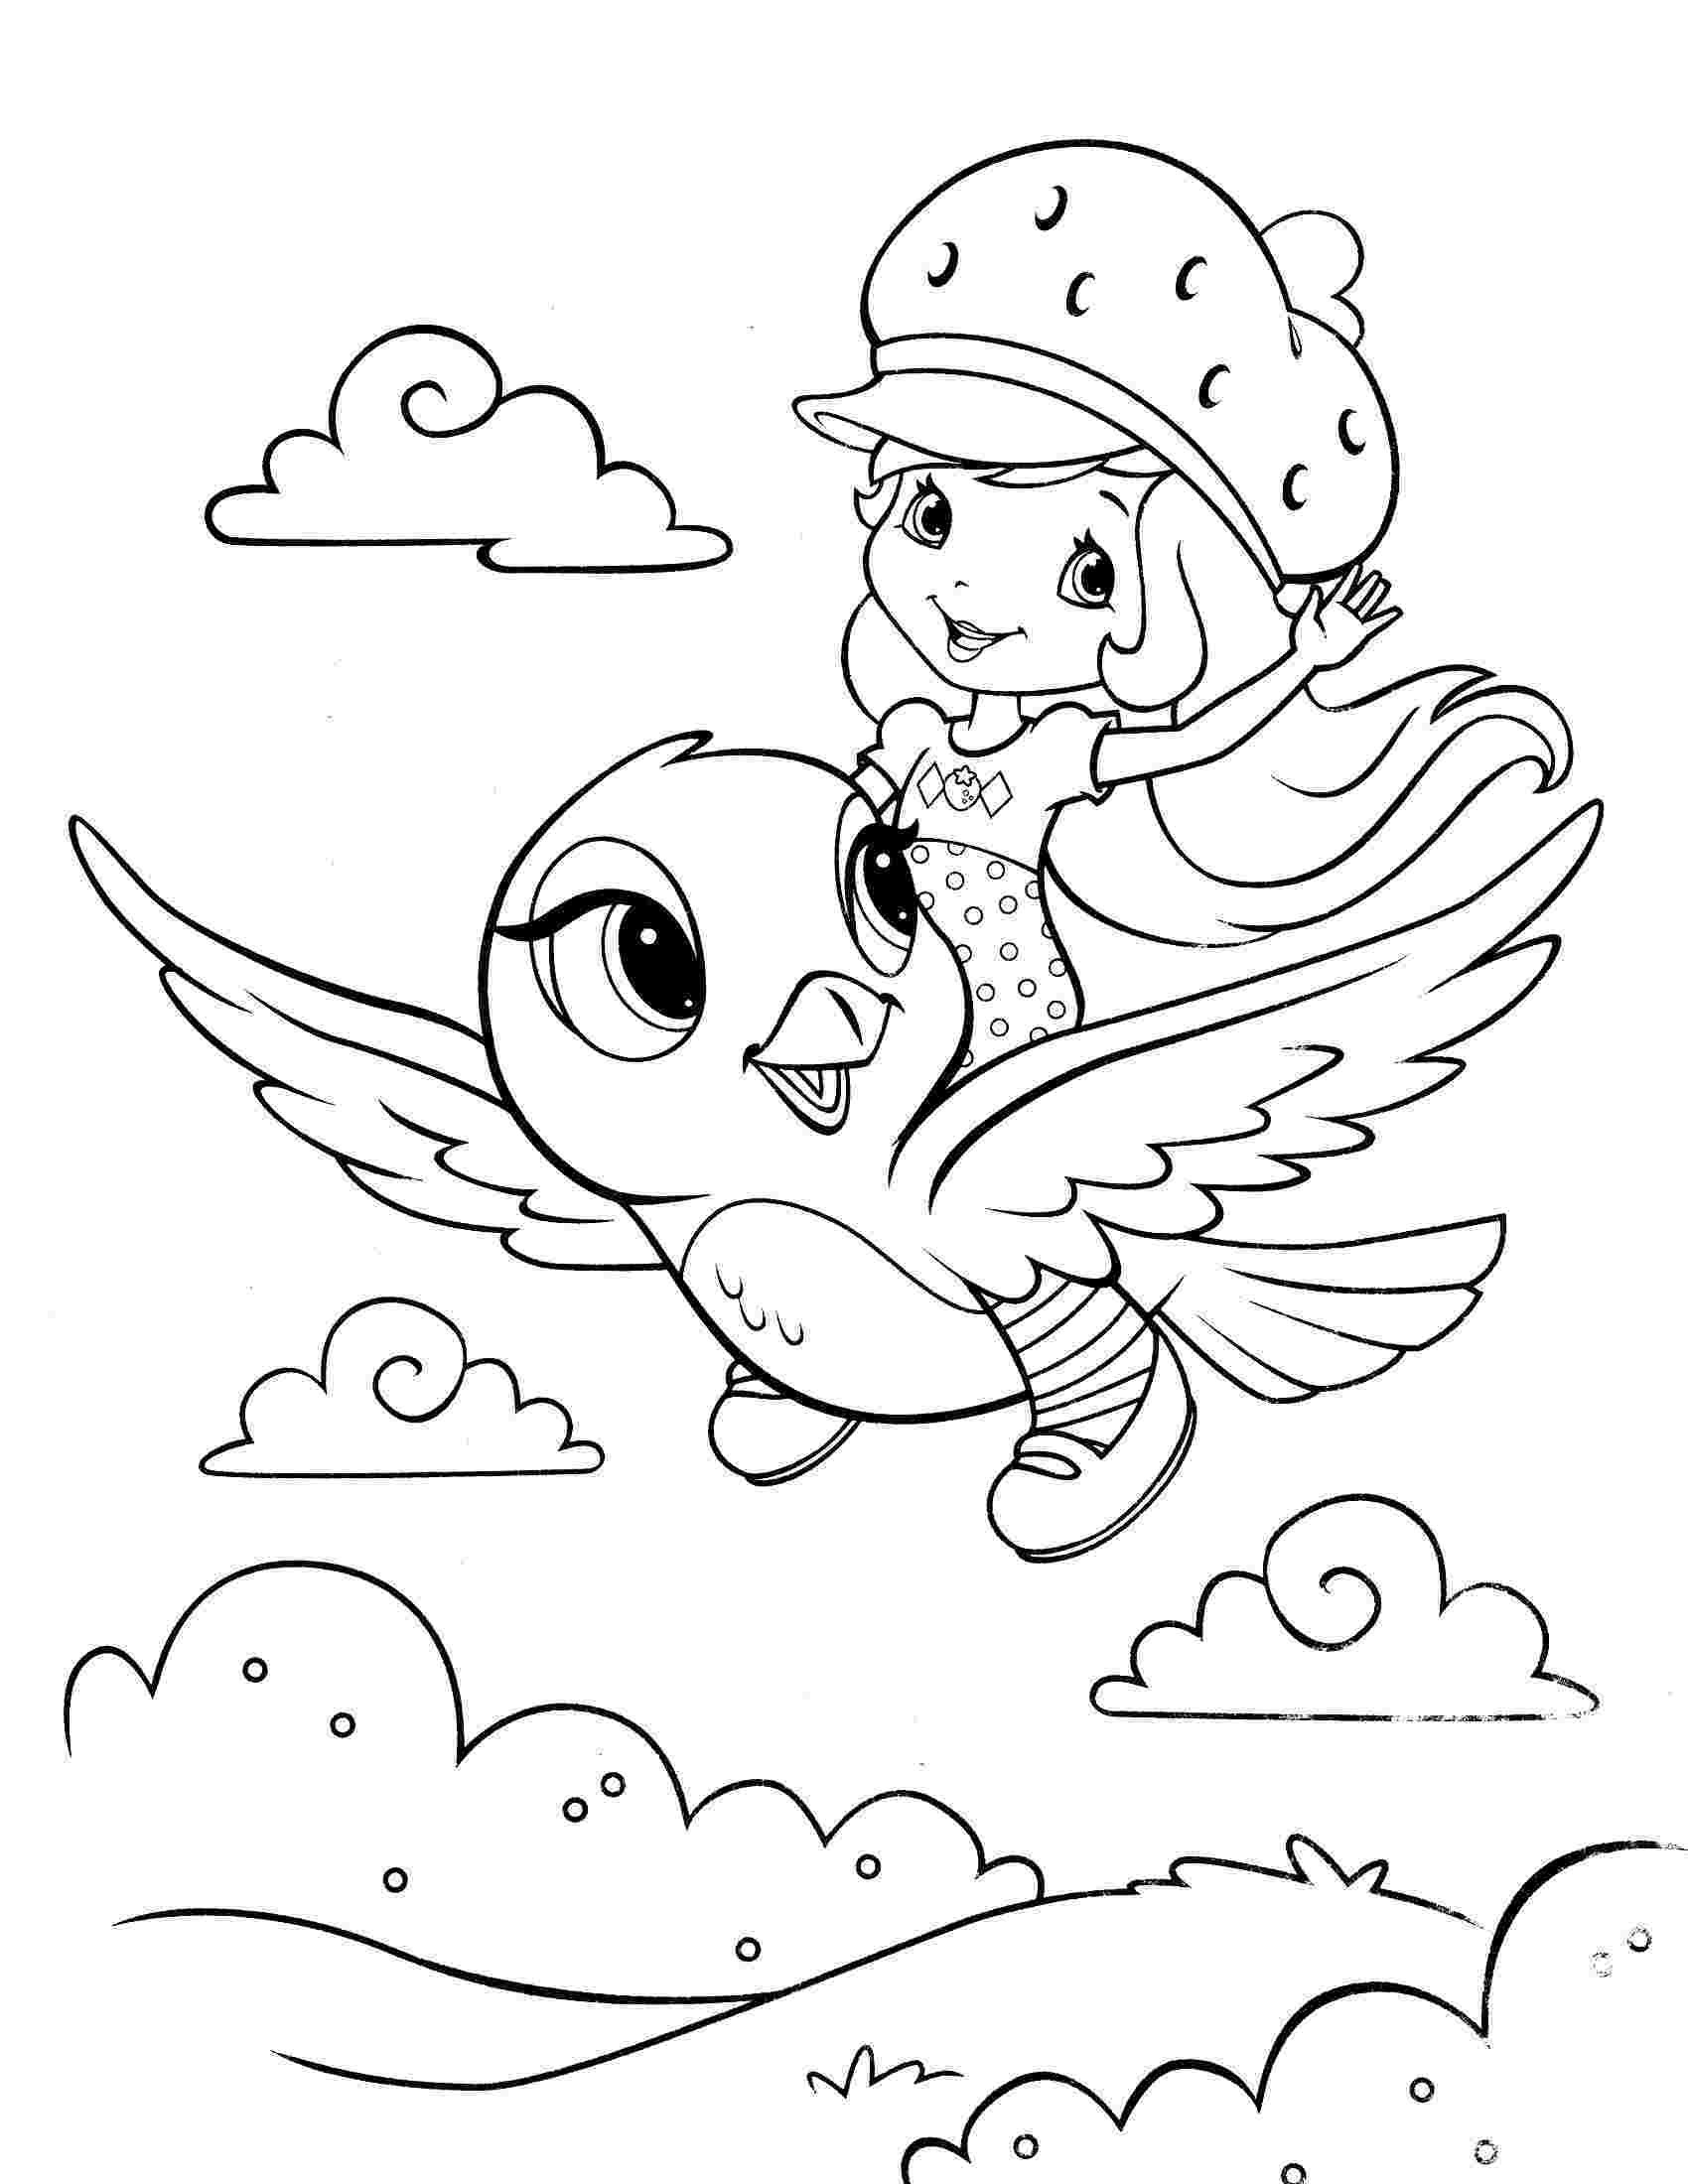 coloring pages strawberry shortcake strawberry shortcake coloring pages coloring pages coloring strawberry pages shortcake